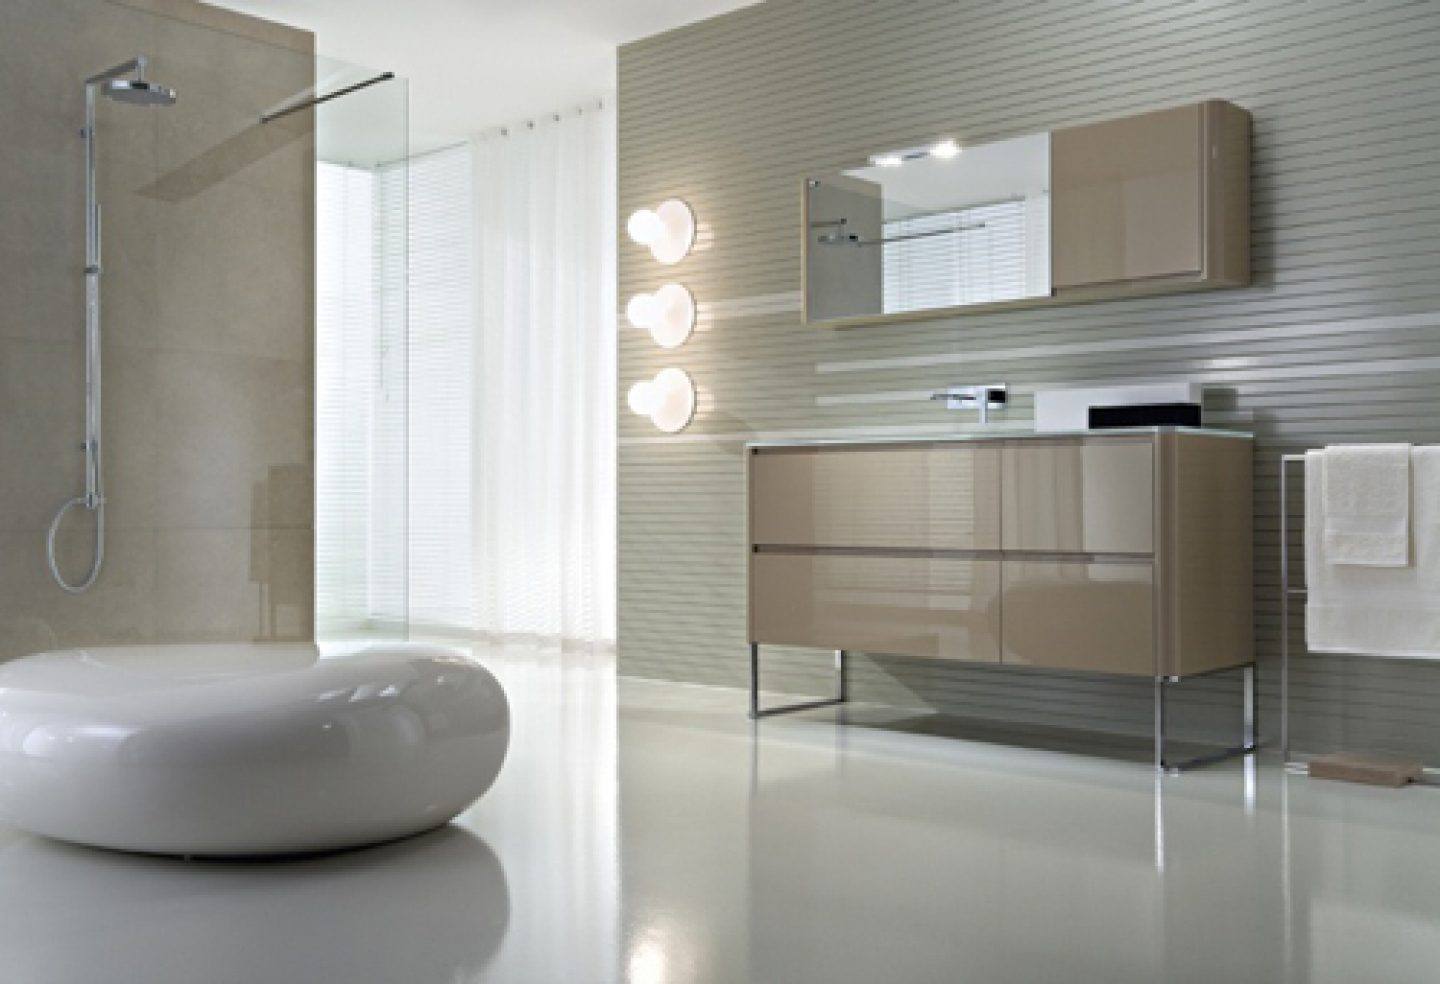 Baños Minimalistas Decoracion:Modern Bathroom Vanities